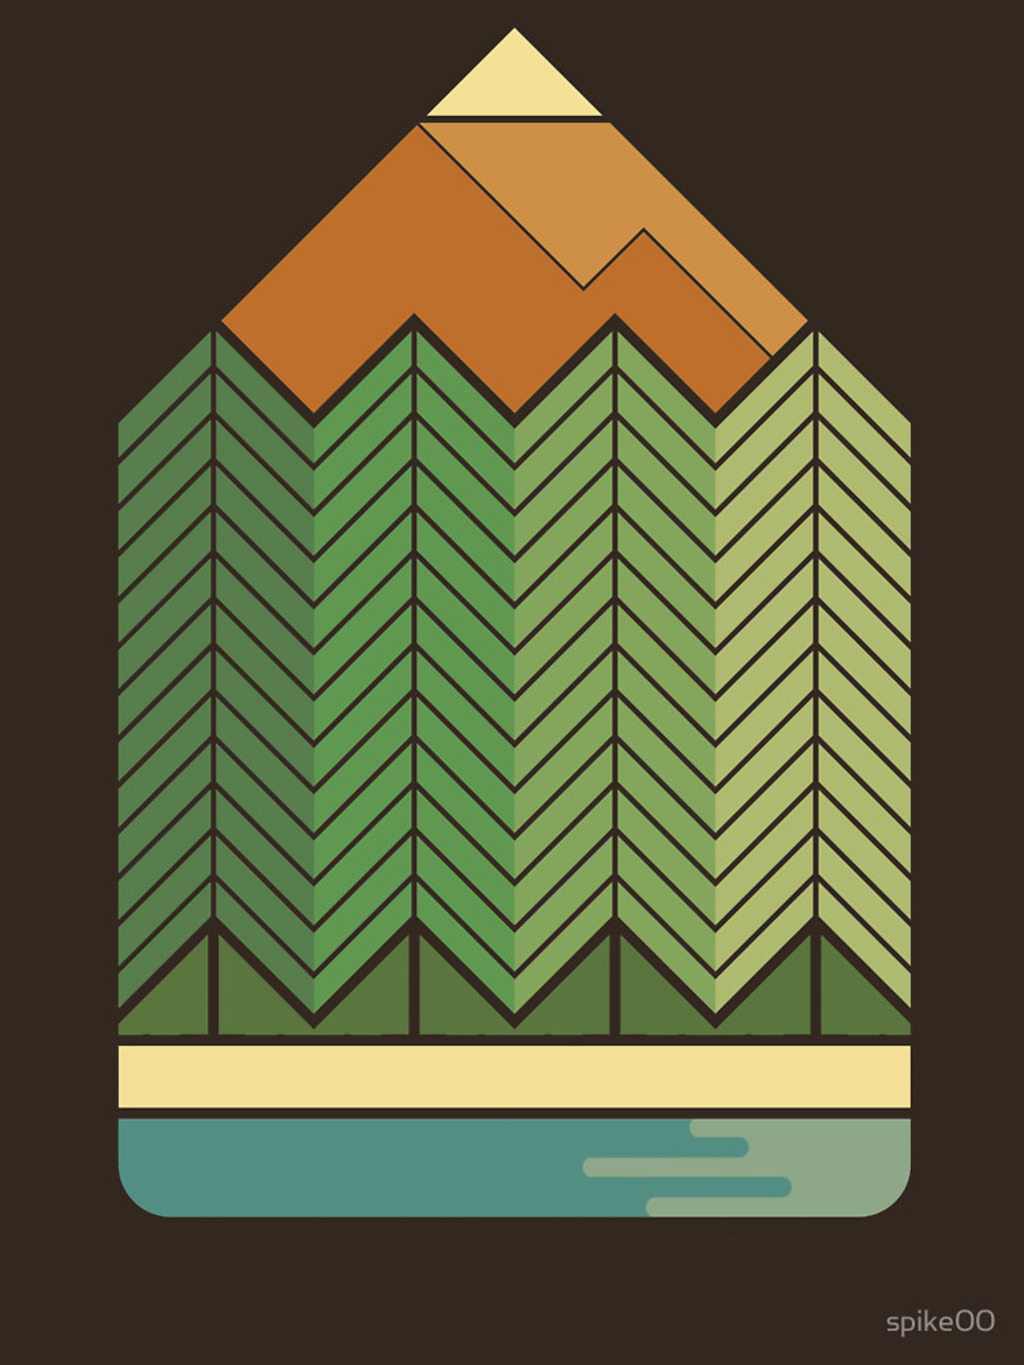 RedBubble: Drawing Mountains